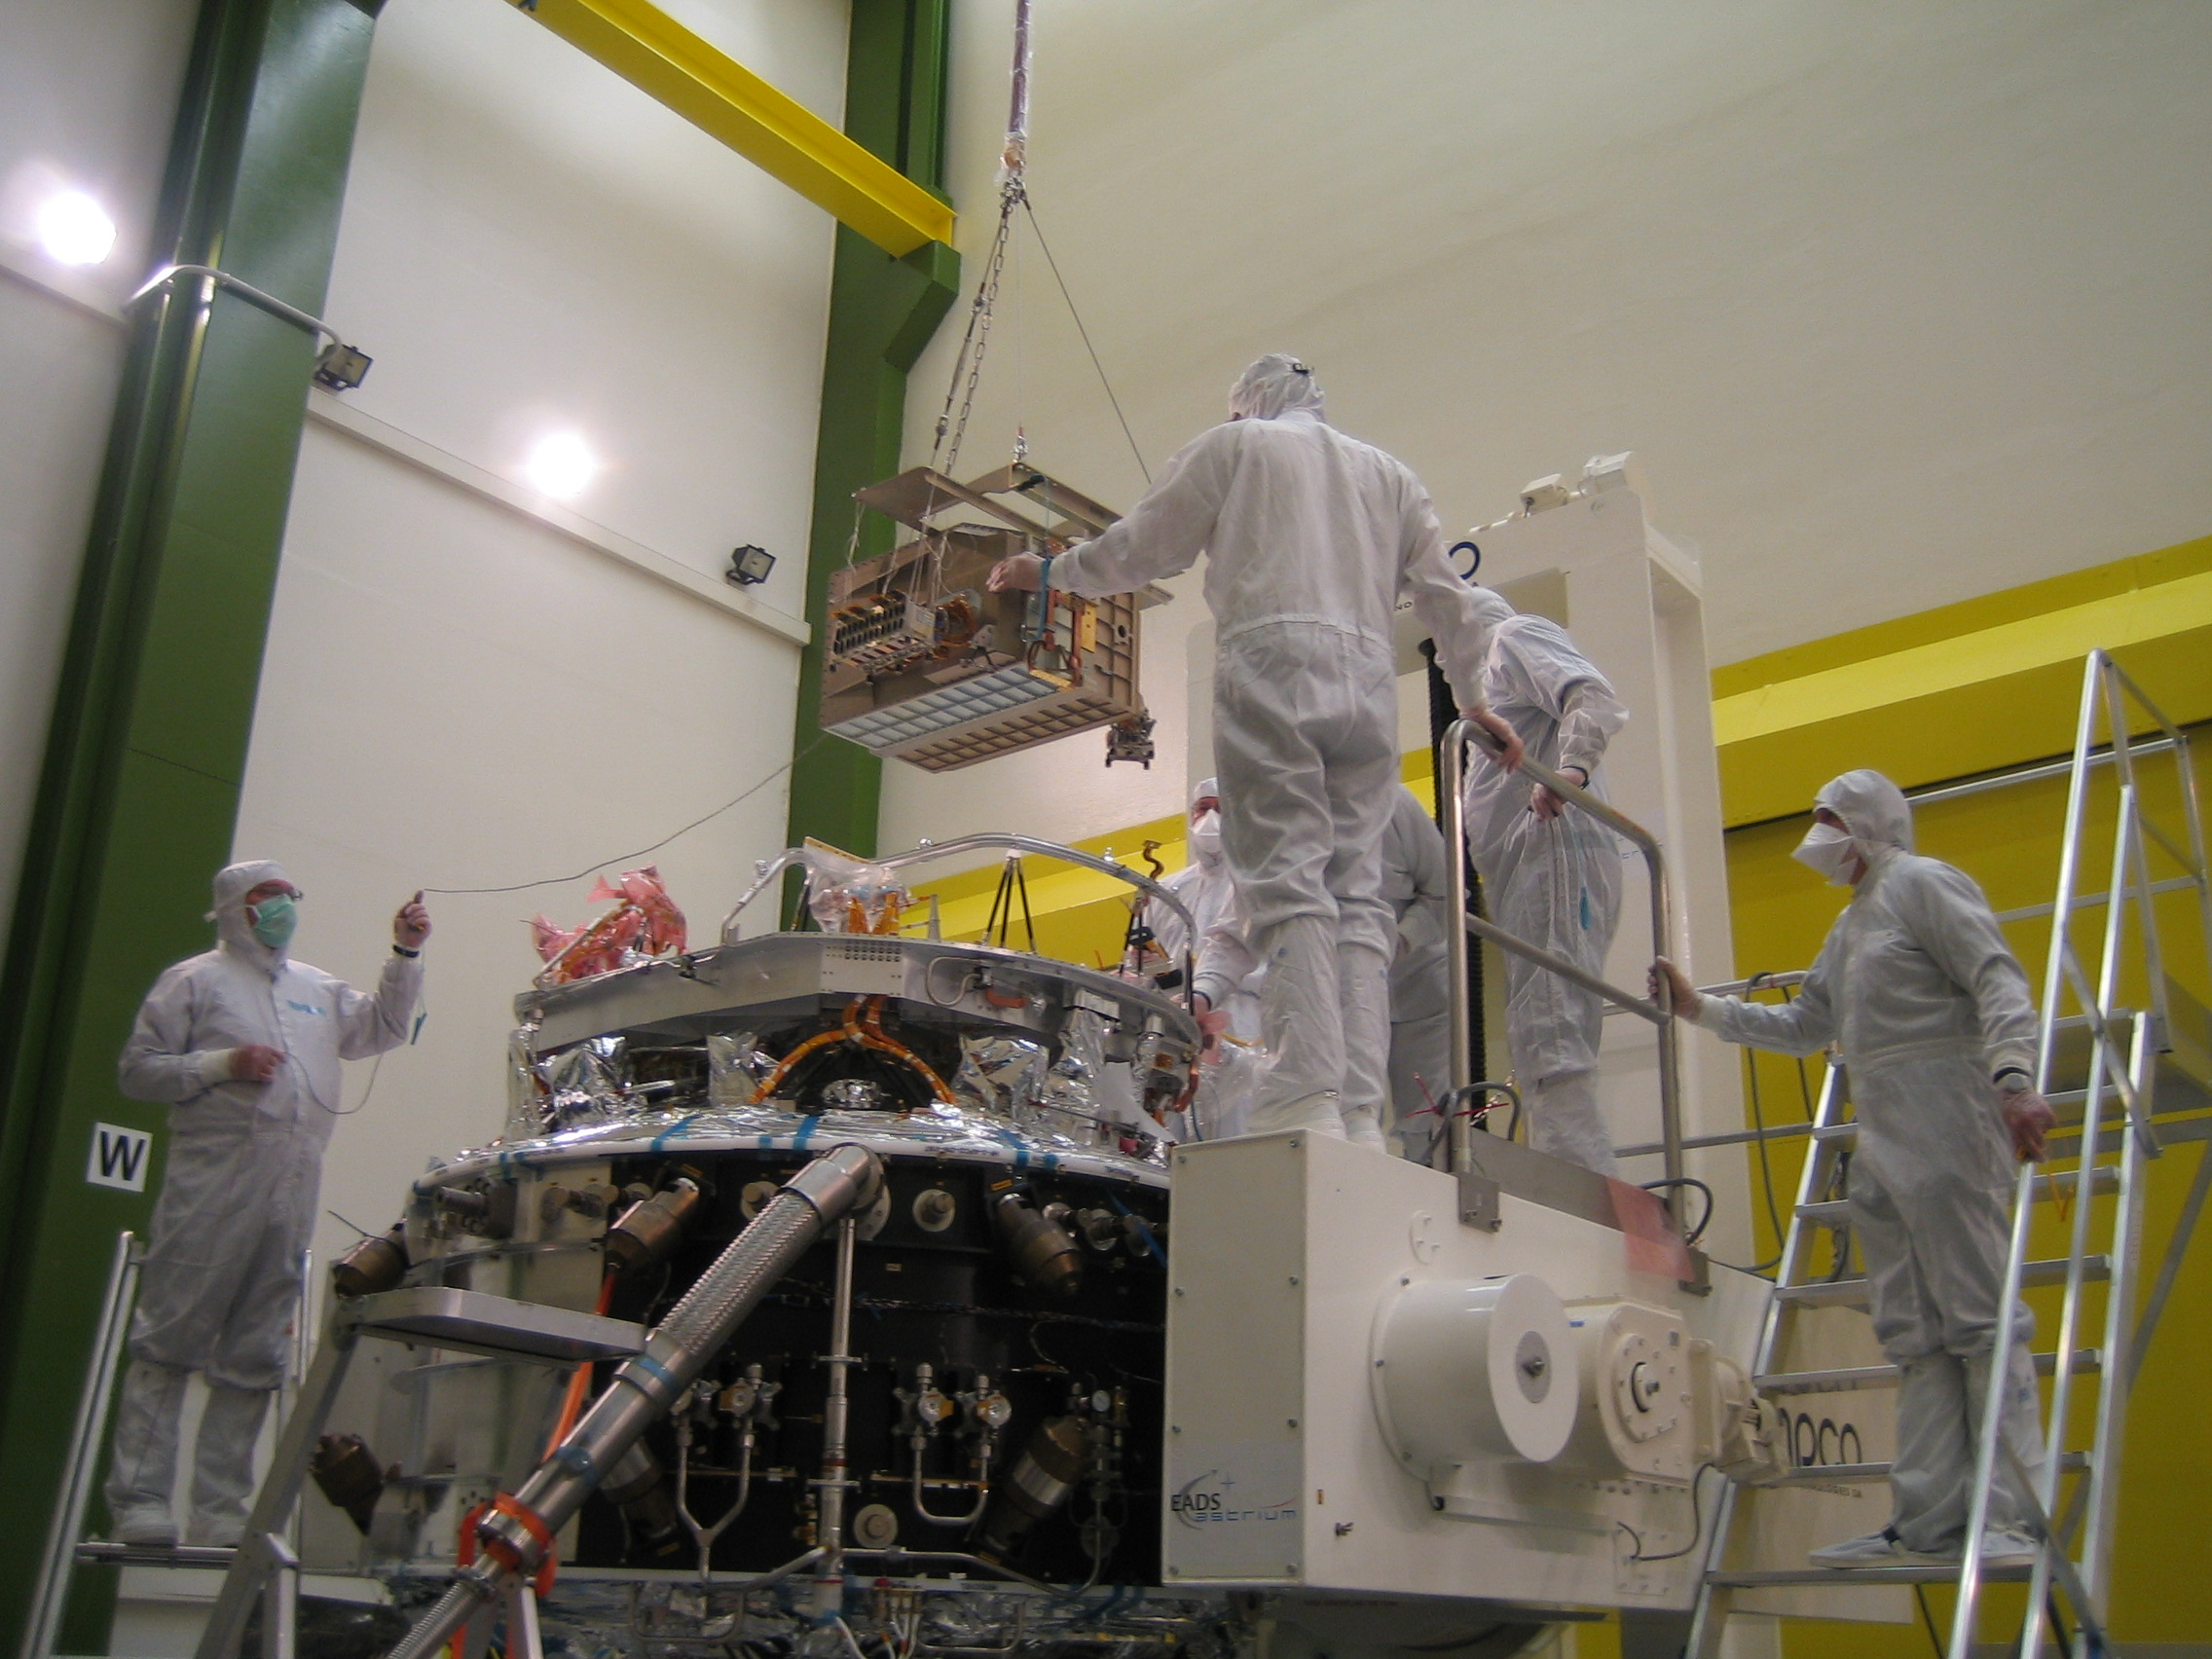 SPIRE FM FPU mounted on the Herschel flight cryostat optical bench in Astrium, Friedrichshafen, Germany.